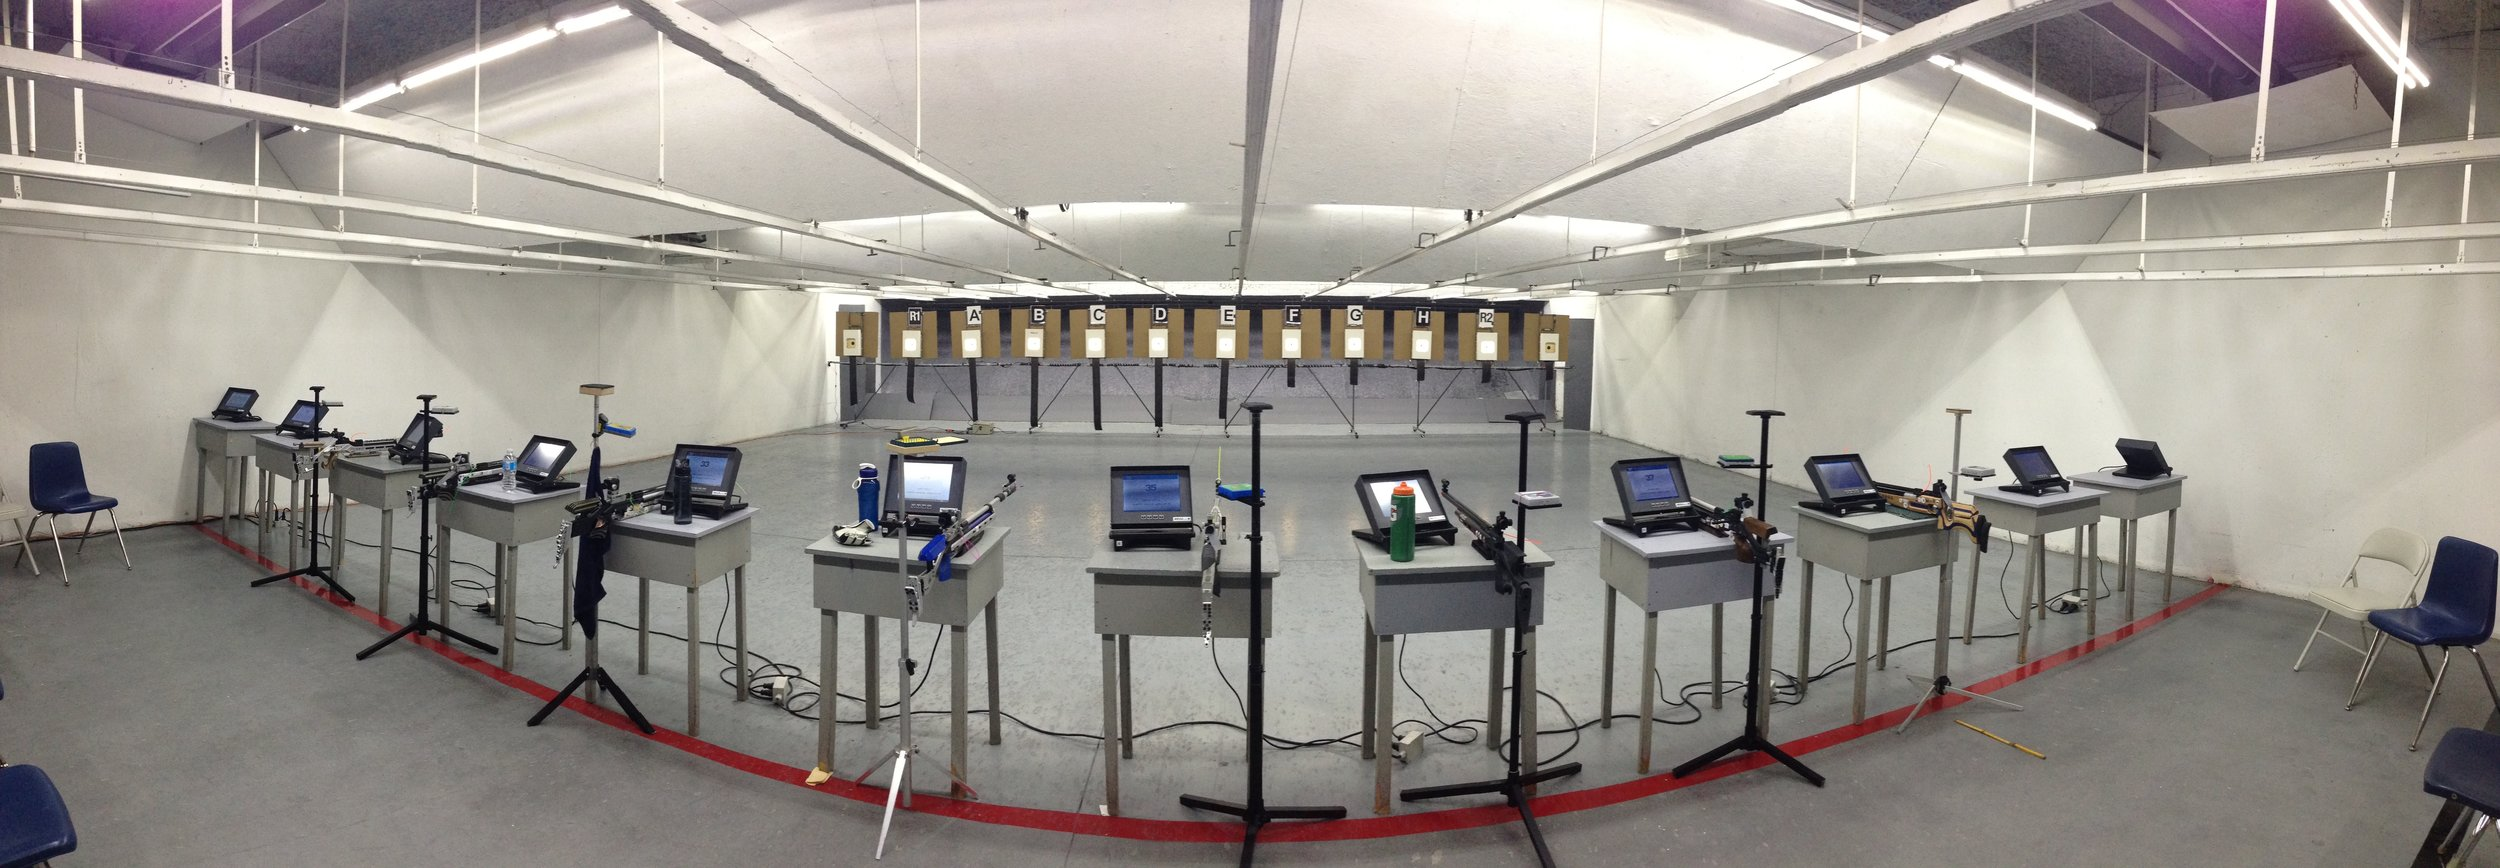 CRPC - City of Calgary Air Gun Championships - AR40 Finals - March 2017 Megalink Electronic Scoring